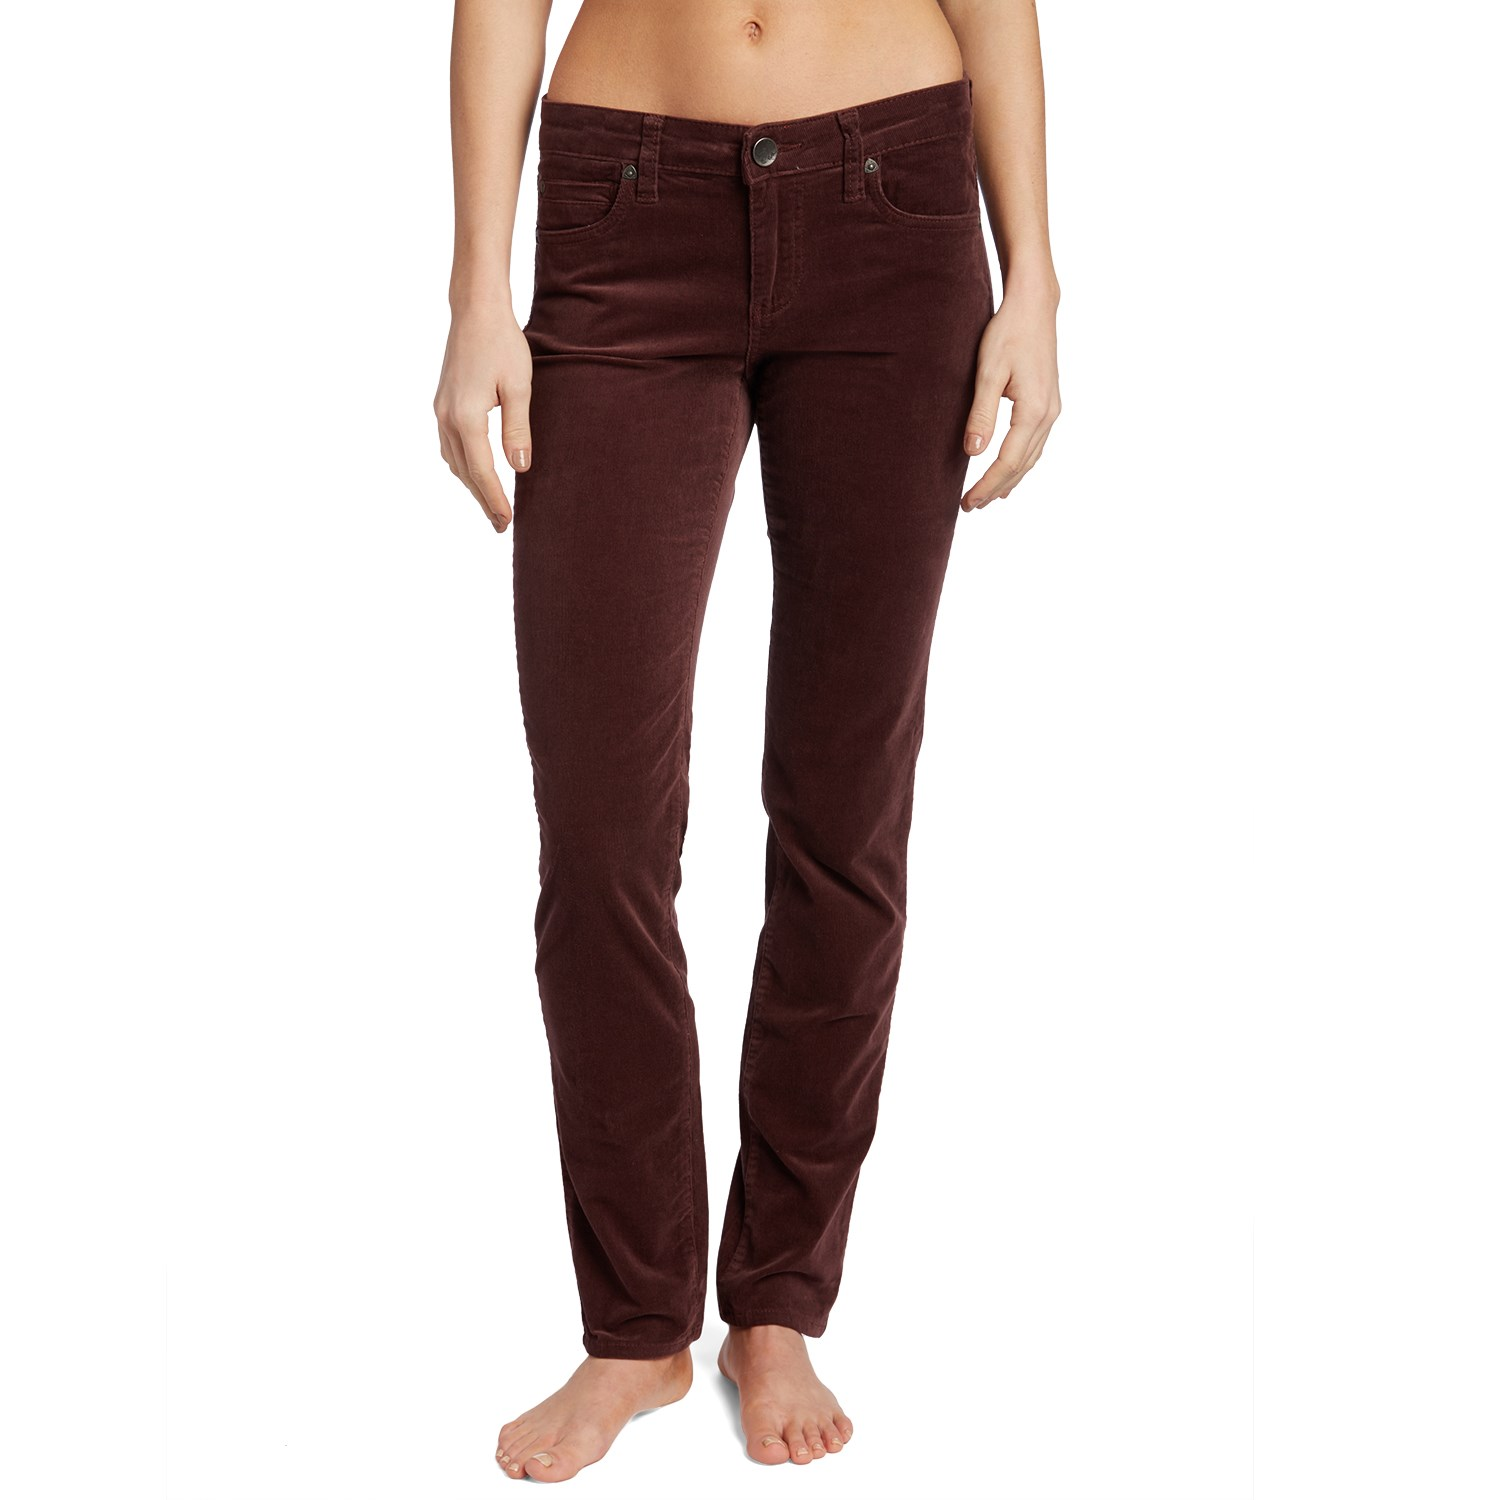 b5c0d3d1 KUT from the Kloth Diana Skinny Corduroy Pants - Women's | evo